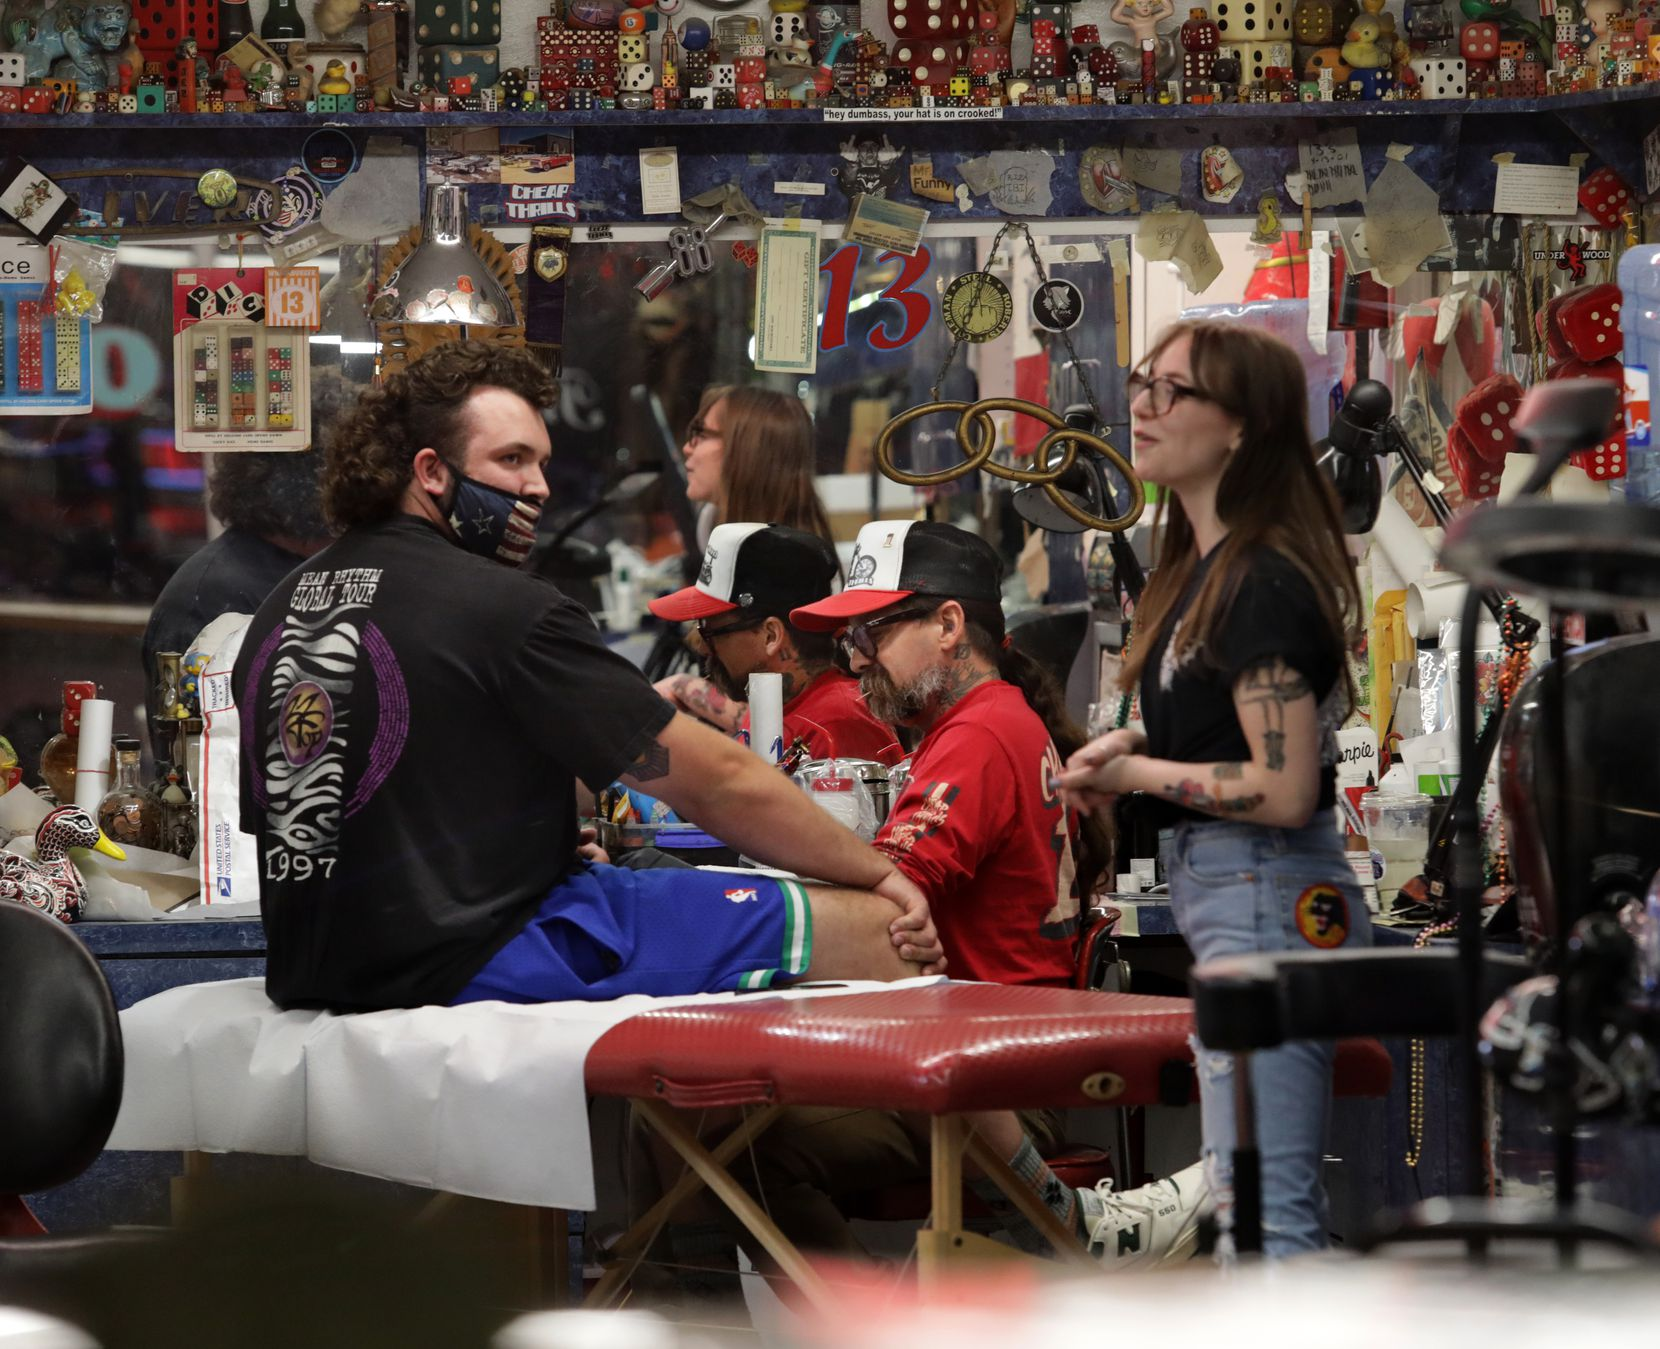 Guests and employees enjoy the evening at Deep Ellum's Elm Street Tattoos in Dallas, TX, on Mar. 10, 2021.